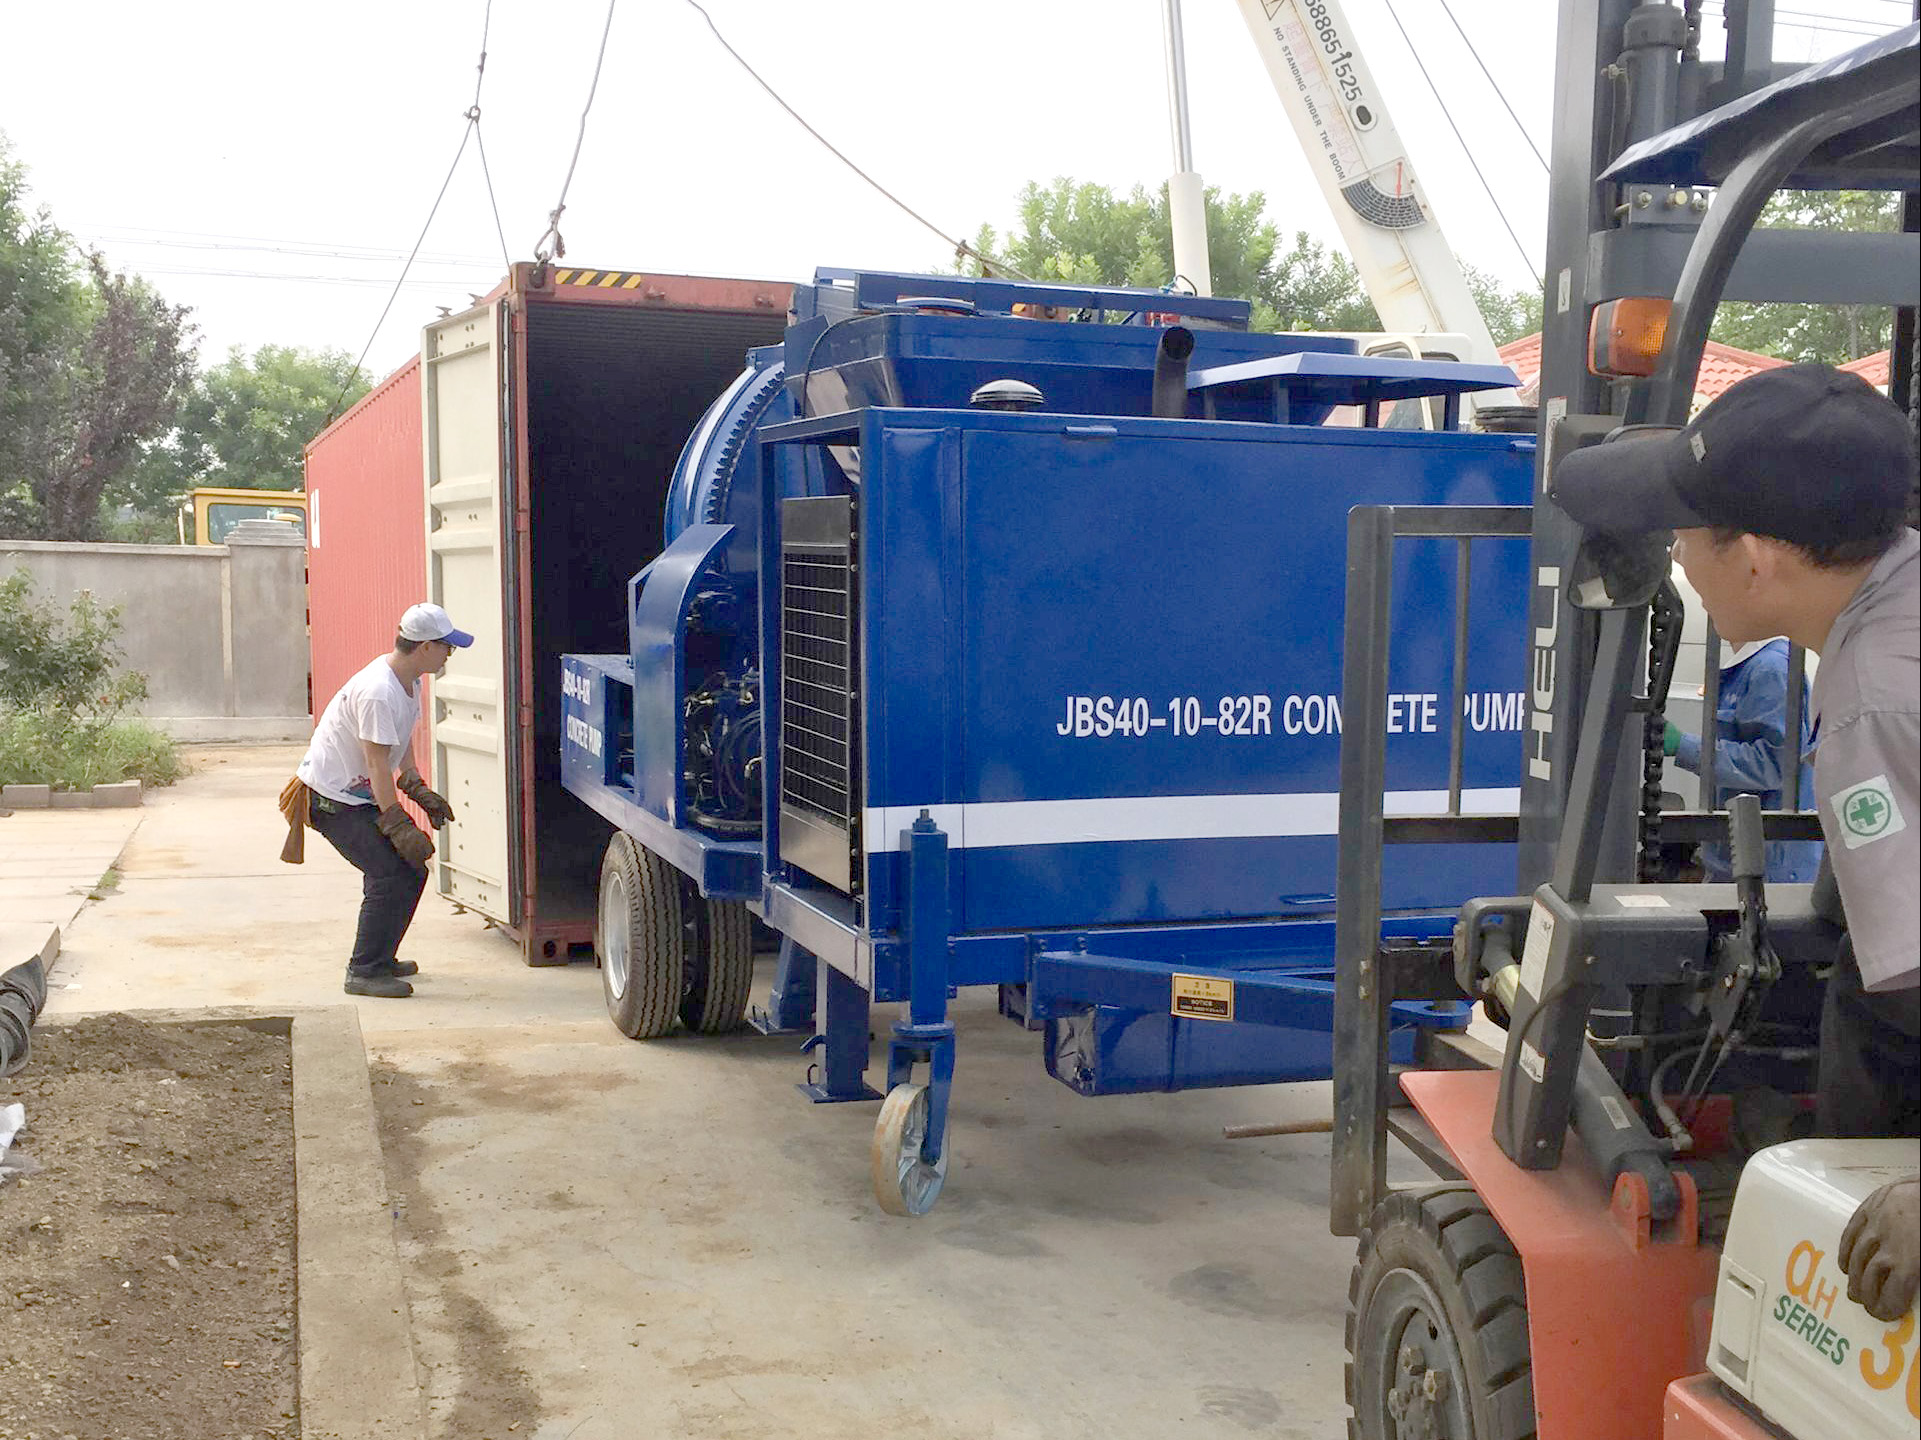 Our portable concrete mixer and pump was exported to Fiji